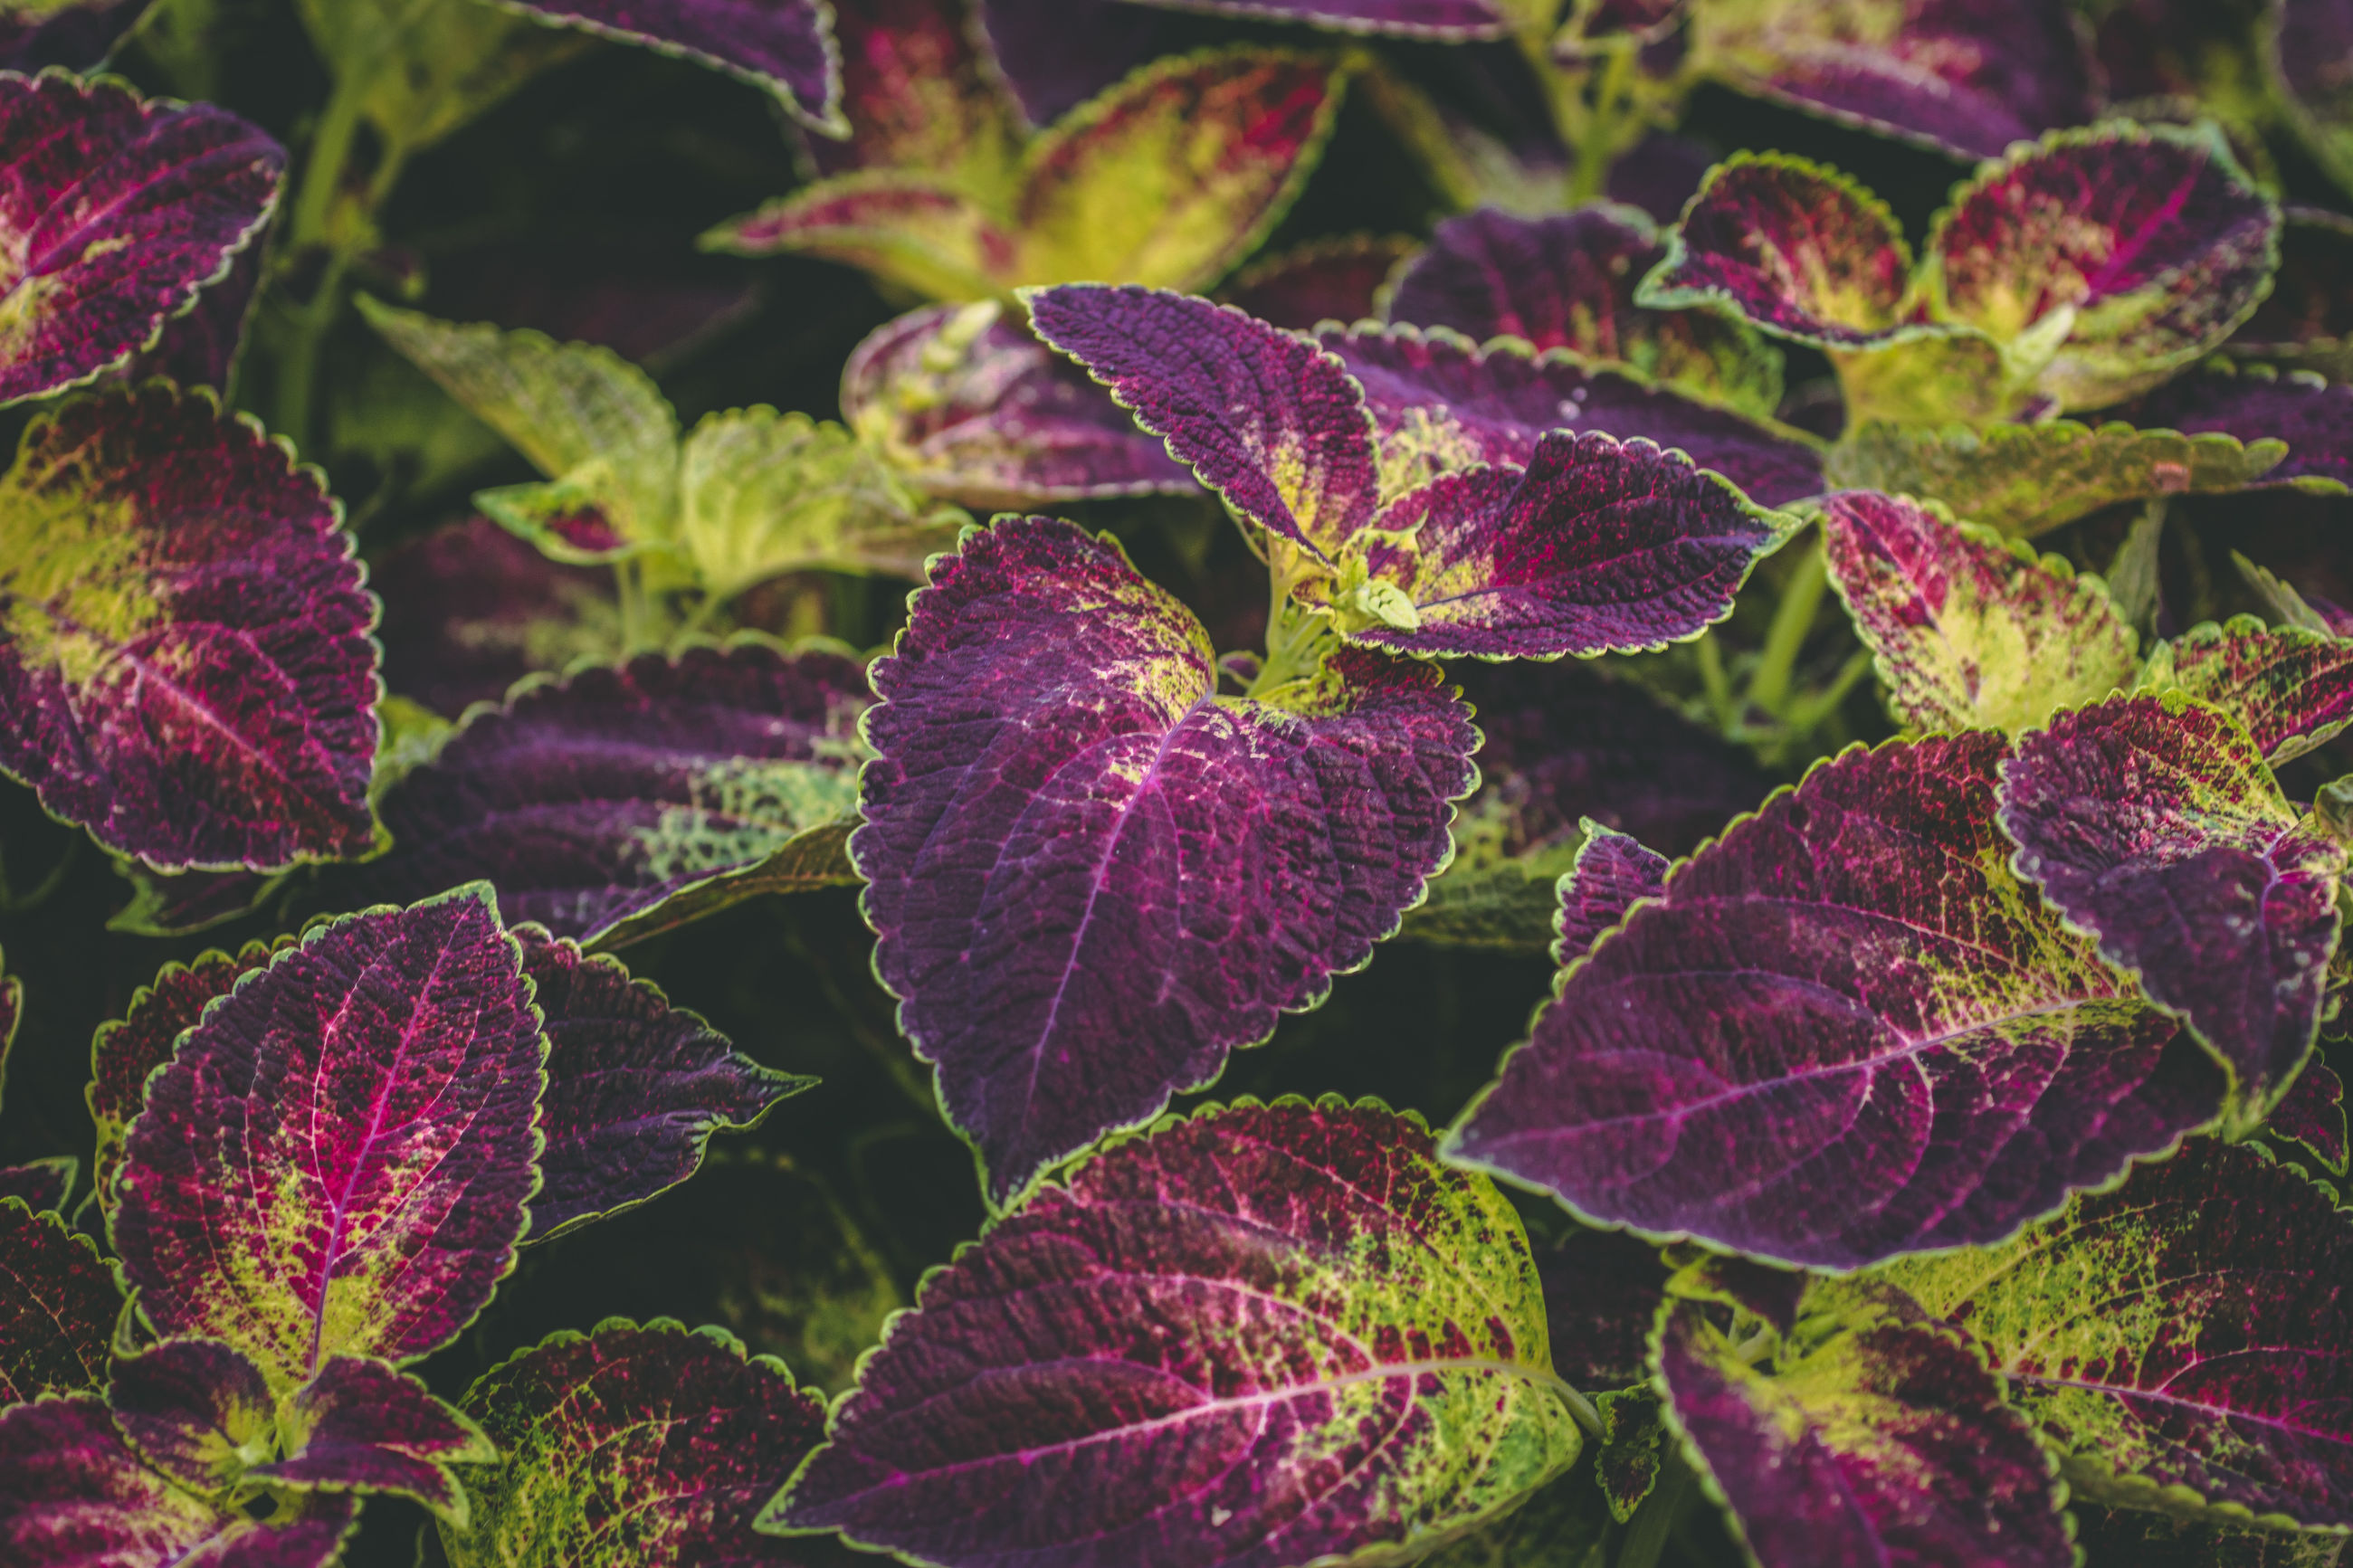 Close-up of purple flowering plant leaves